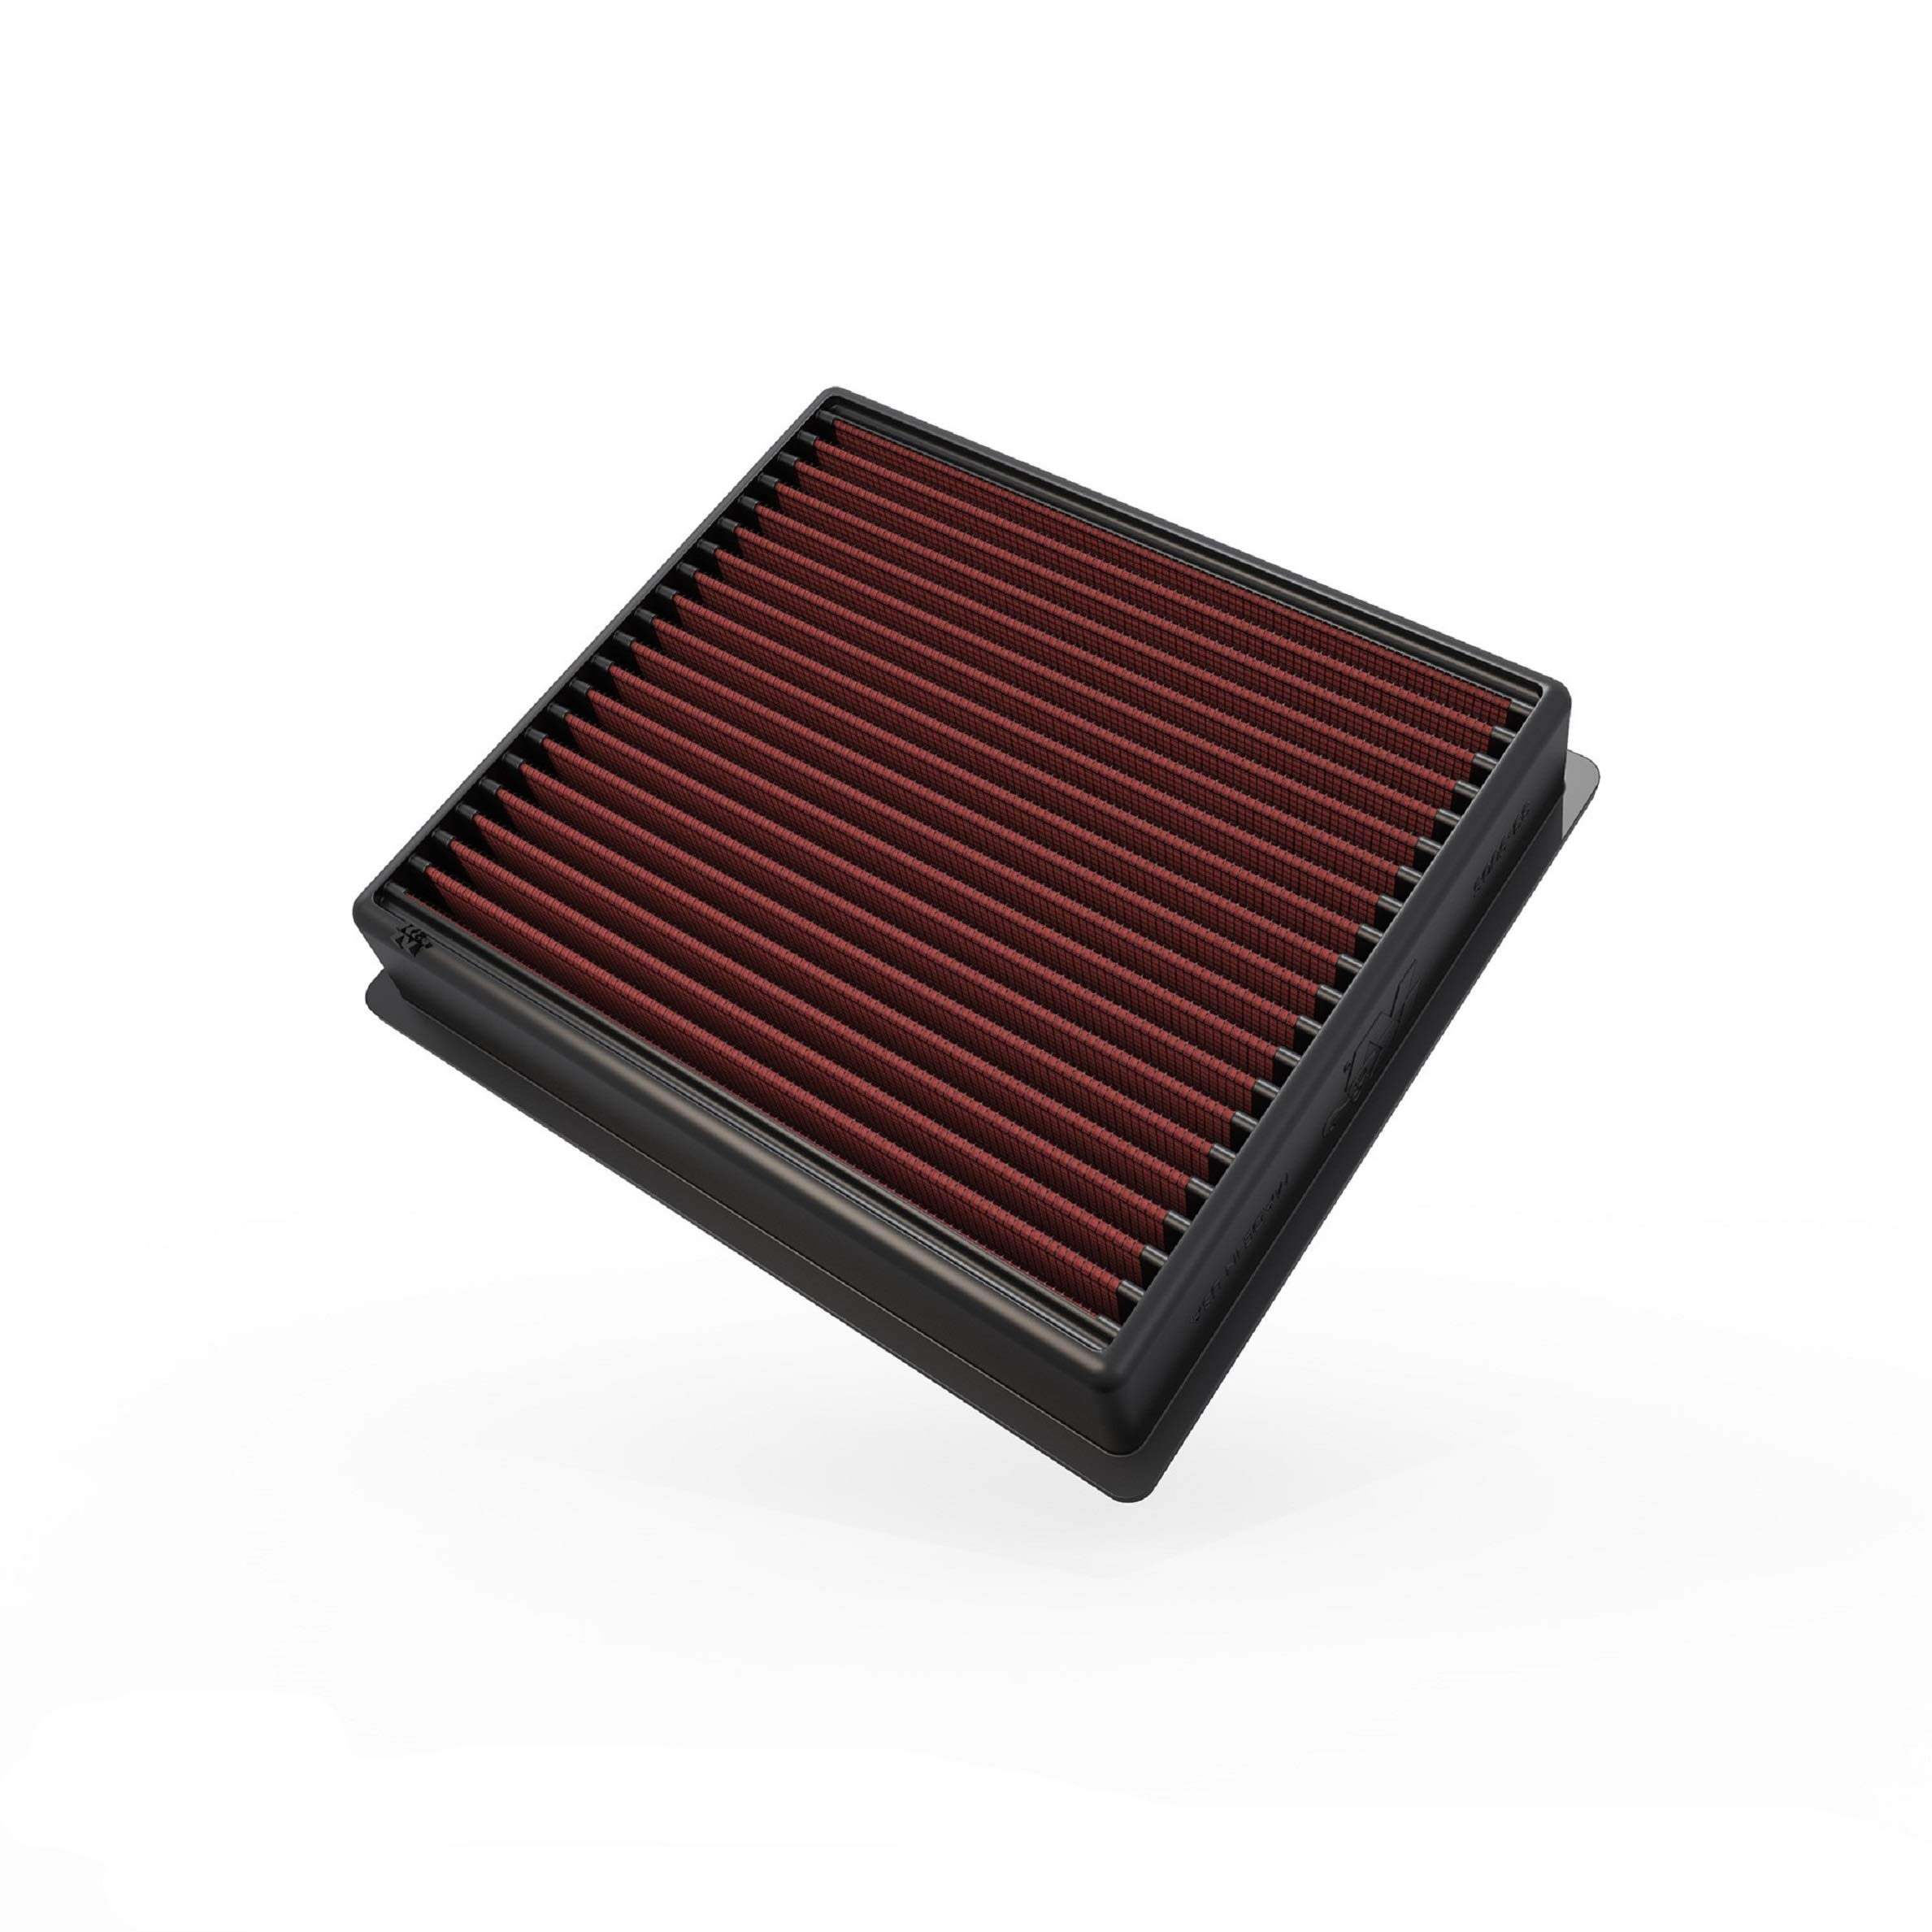 K&N Engine Air Filter: High Performance, Premium, Washable, Replacement Filter: Fits 2013-2019 Dodge Ram Truck L6 DSL/V8 FI (2500, 3500, 4500, 5500), 33-5005